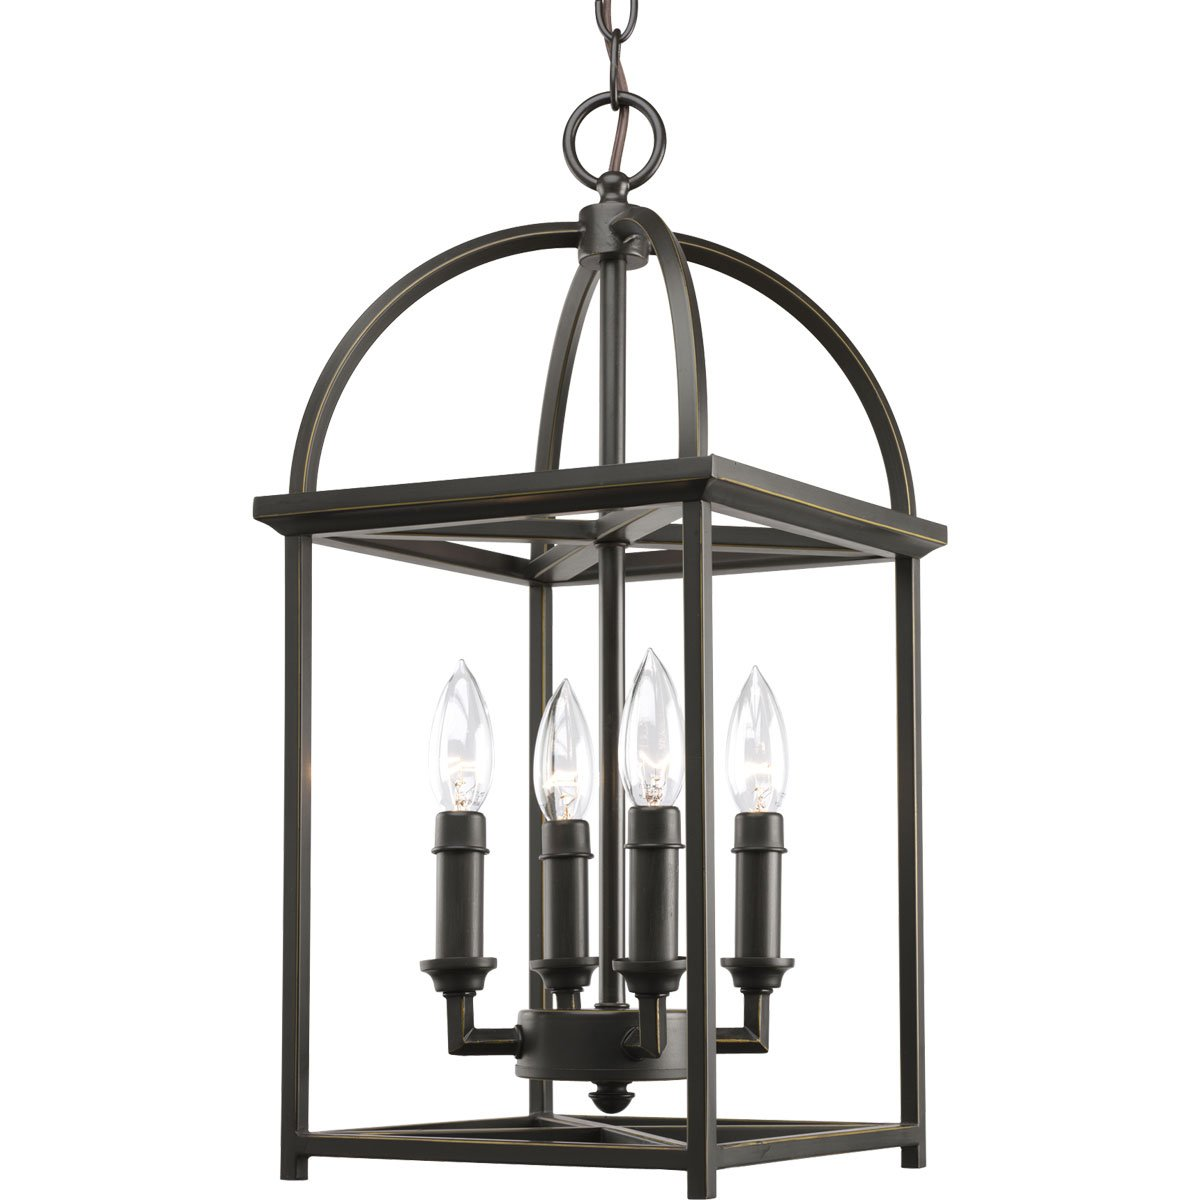 Progress Lighting 94388420 P3884-20 Piedmont Collection Four-Light Foyer Lantern 13-3/8  Width  x 20-3/8  Height Antique Bronze - Ceiling Pendant Fixtures ...  sc 1 st  Amazon.com : lighting foyer - www.canuckmediamonitor.org